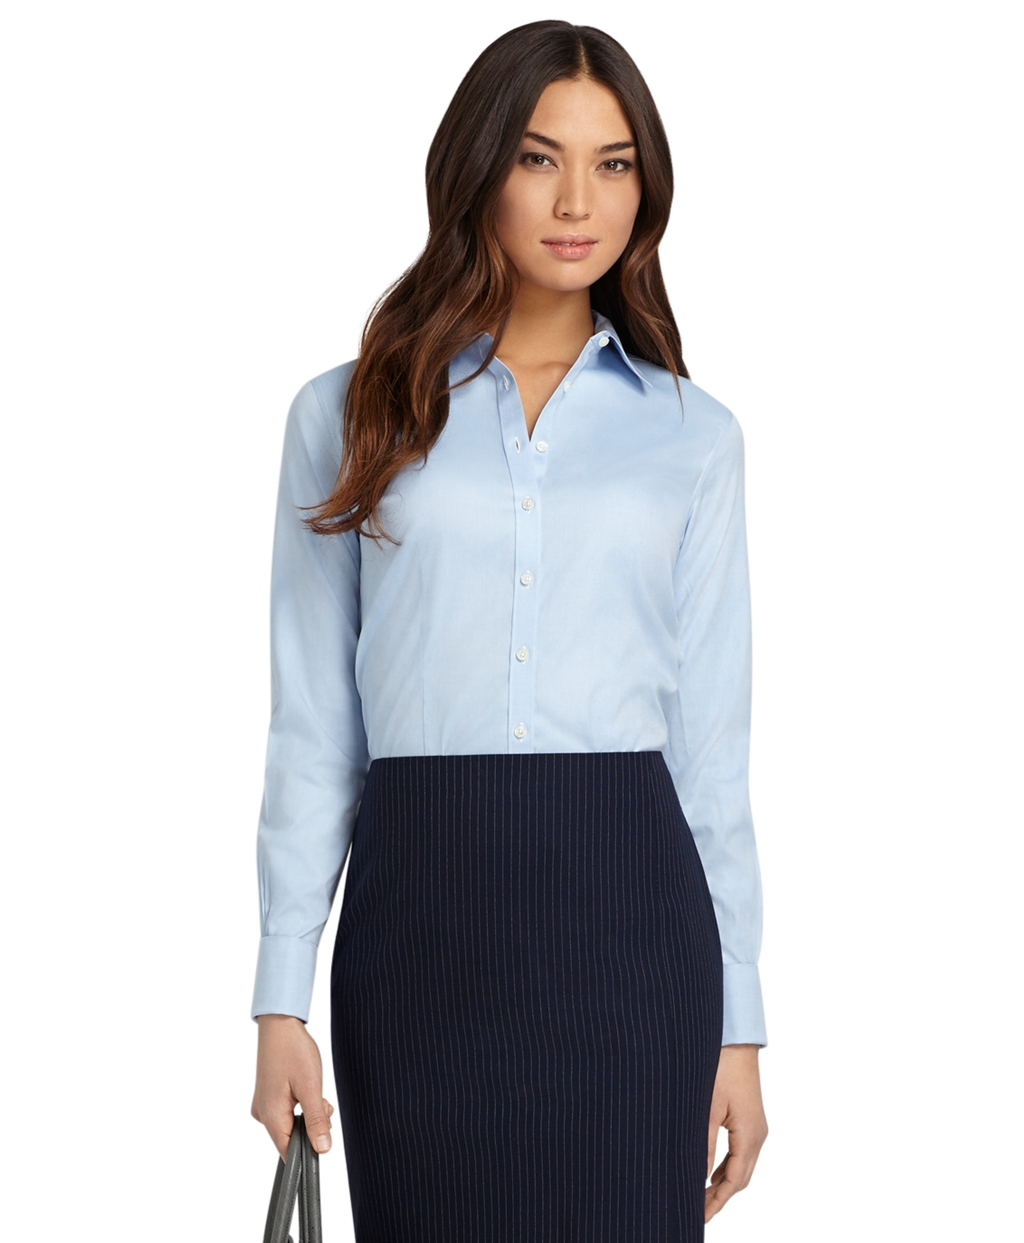 Women S Non Iron Fitted French Cuff Dress Shirt Brooks Brothers